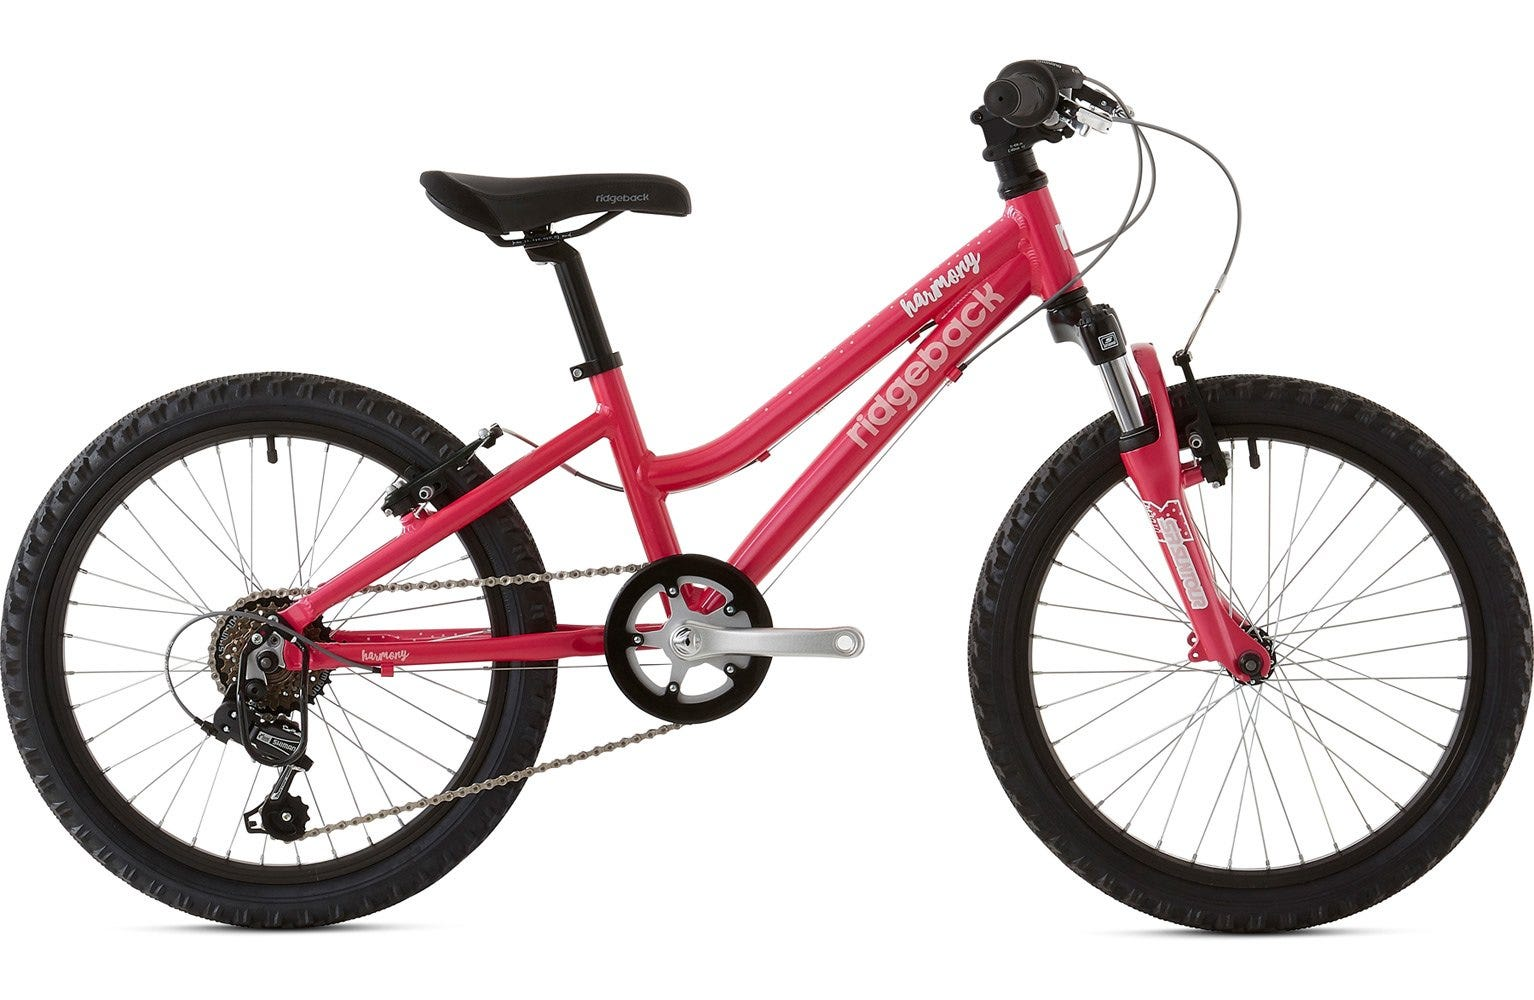 Ridgeback 2020 Harmony 20 Inch Wheel Pink Ex Display Bike